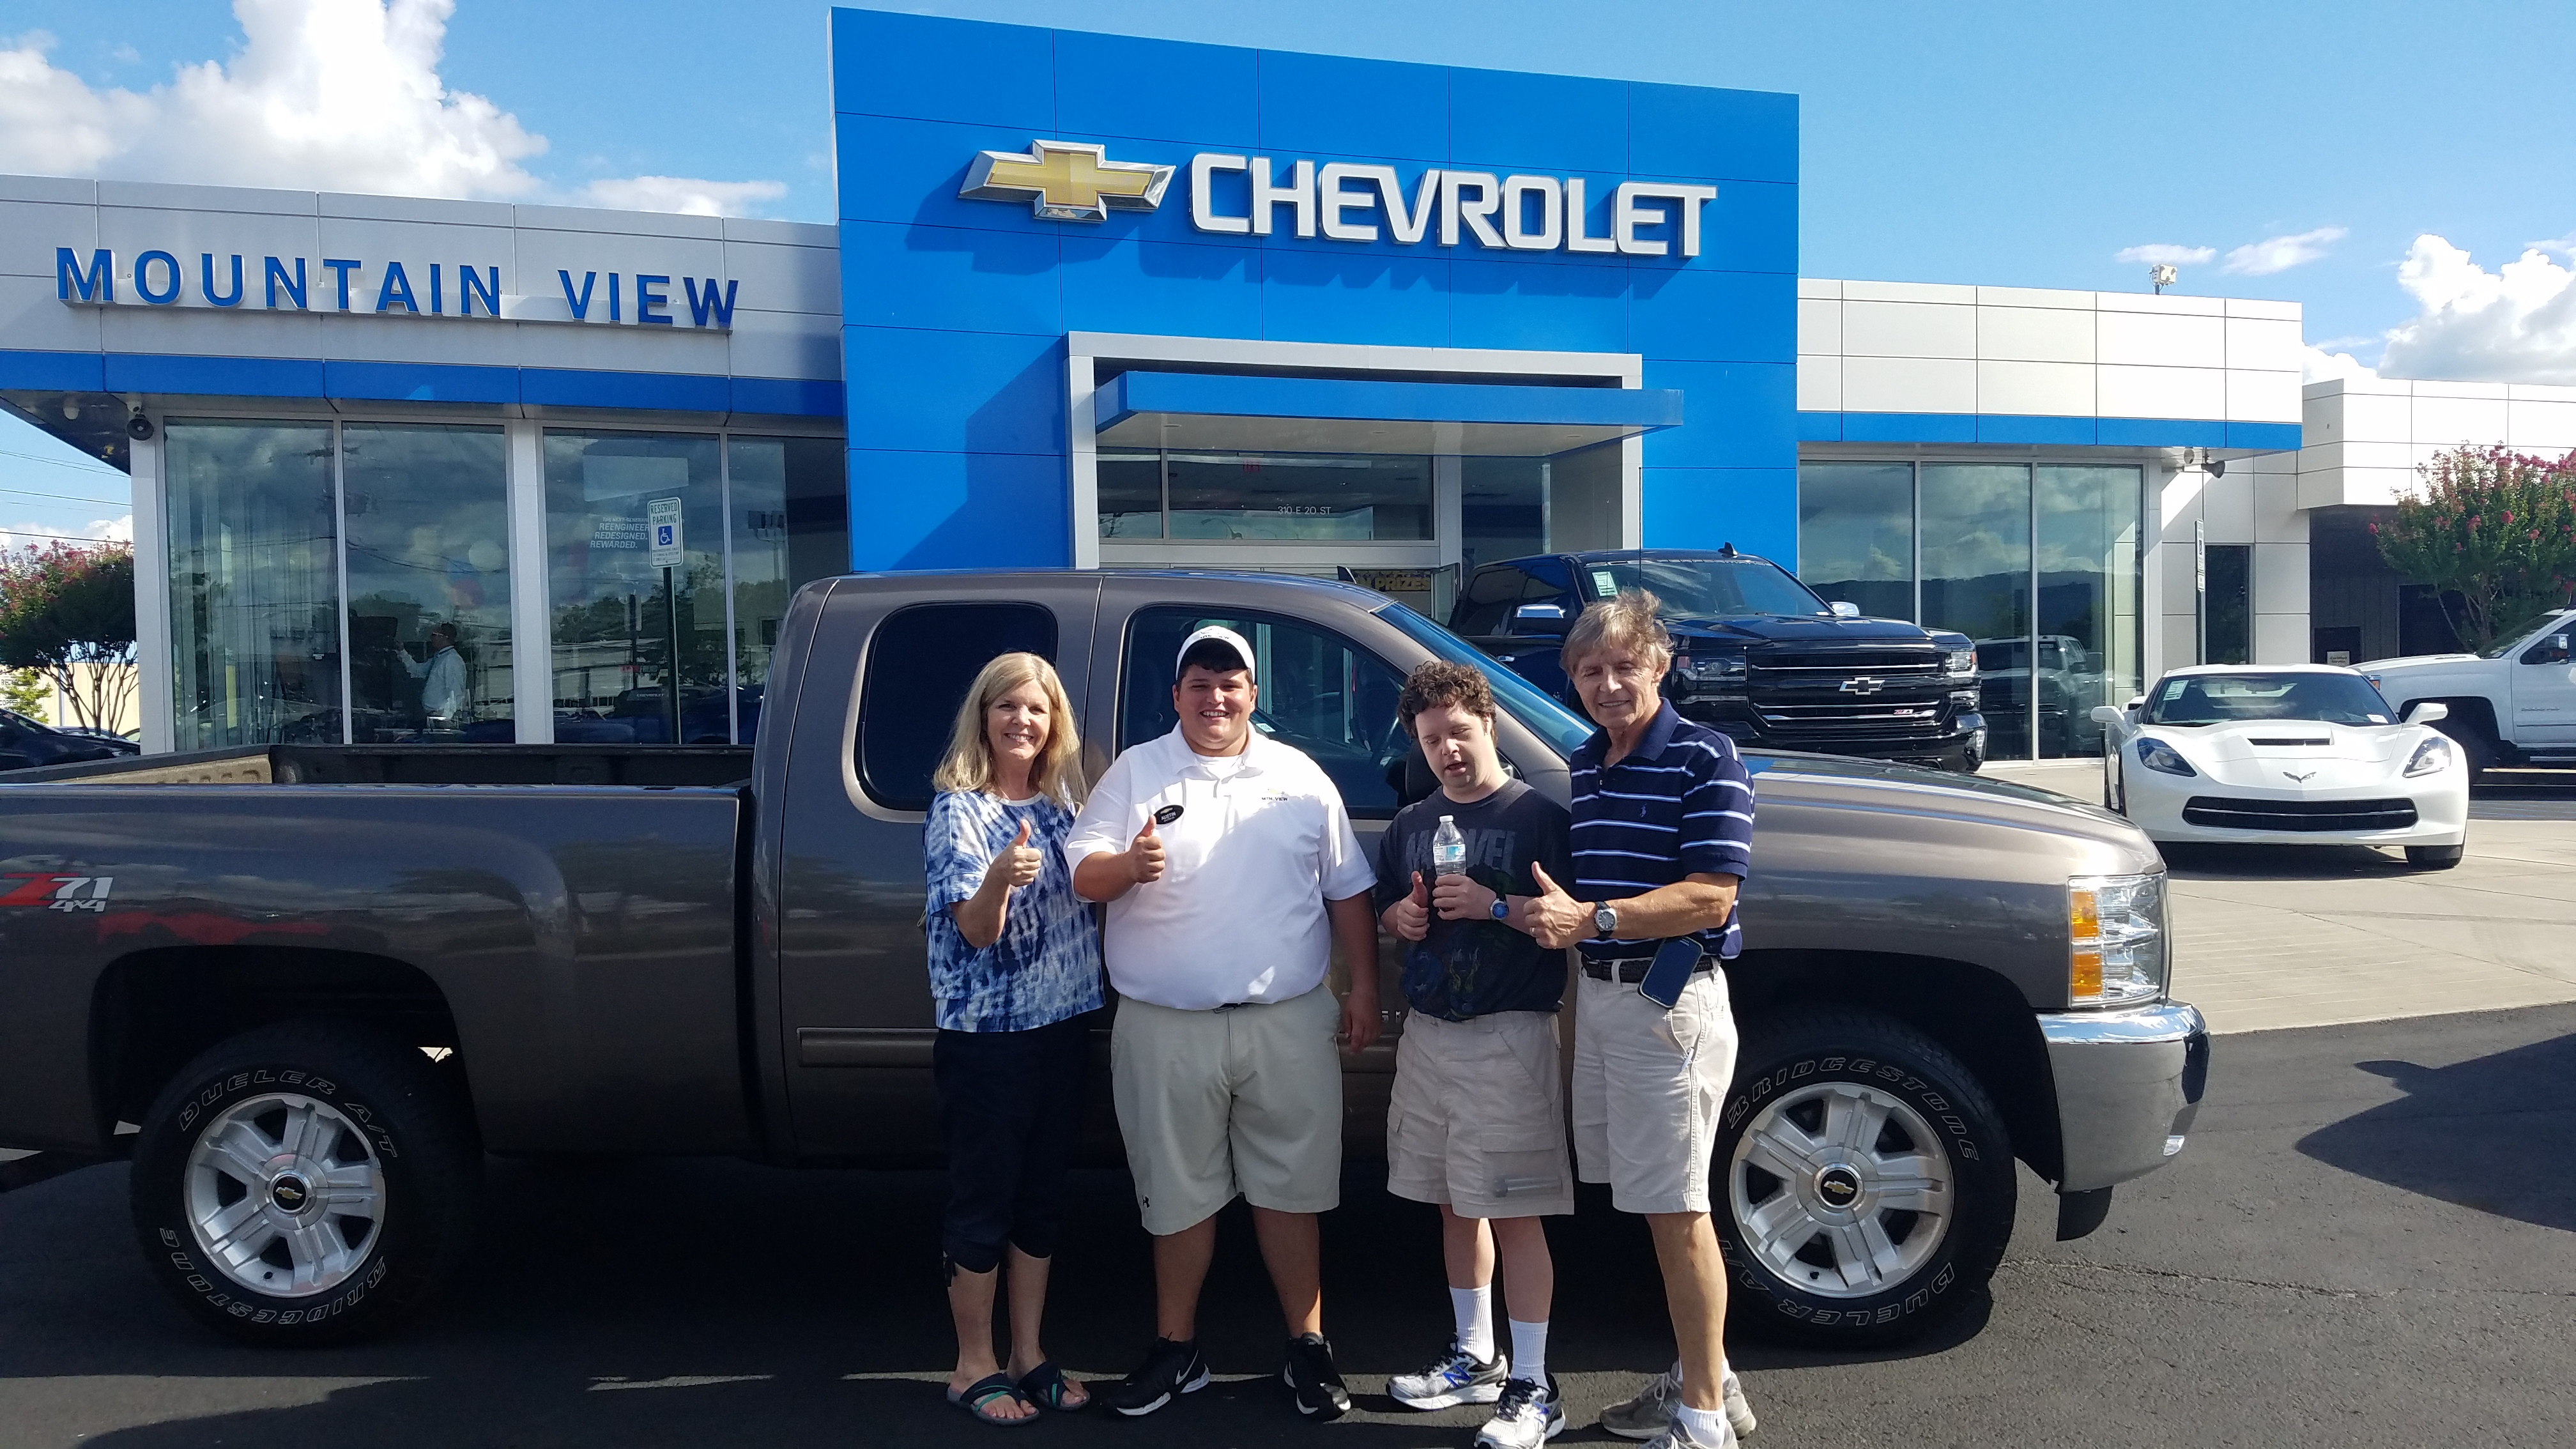 mountain view chevrolet chevrolet dealer reviews 2013 chevrolet. Cars Review. Best American Auto & Cars Review